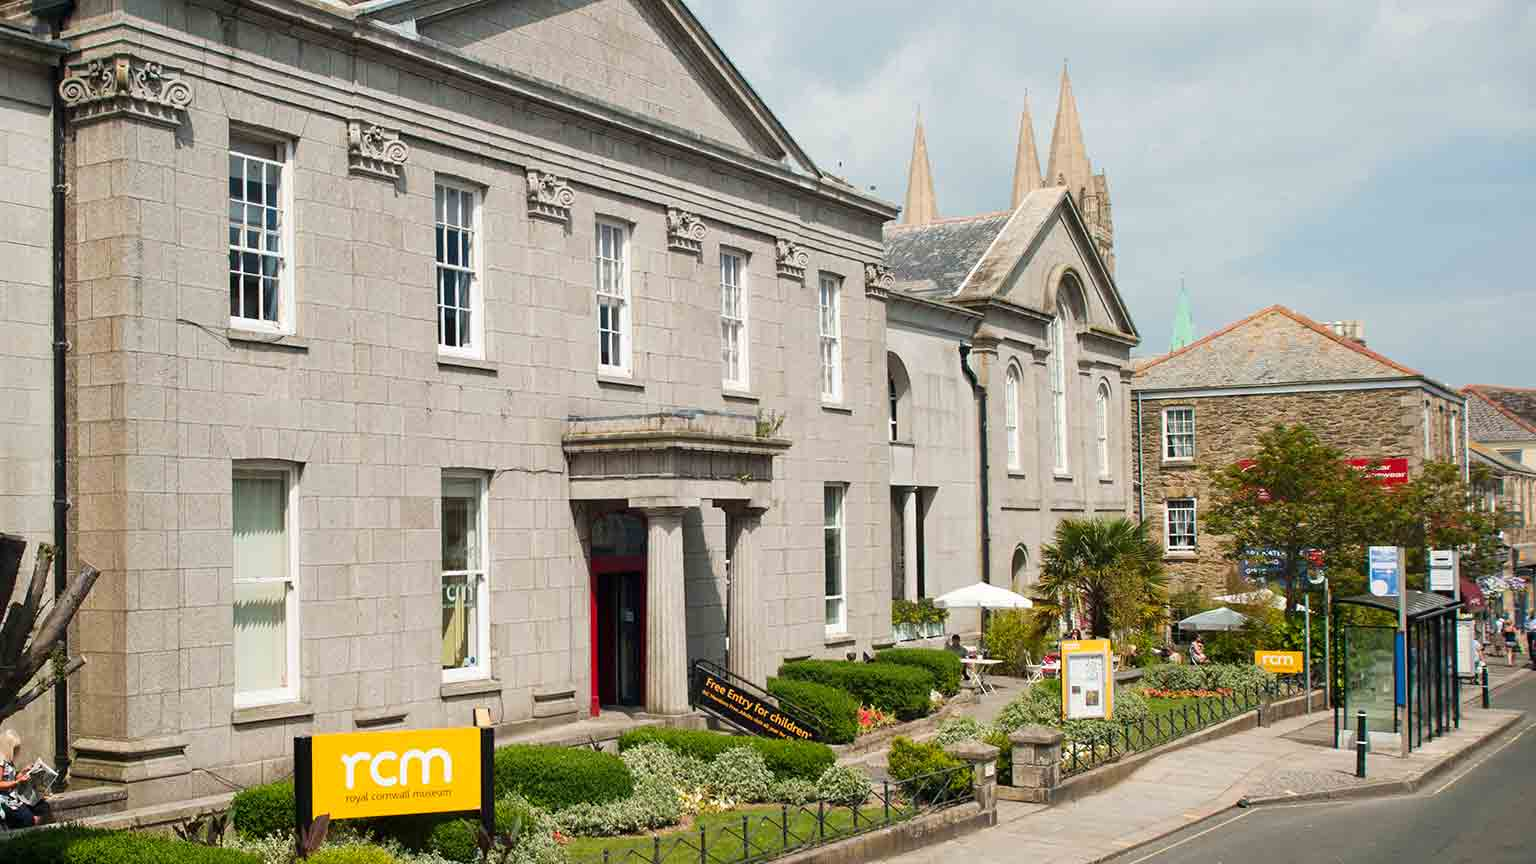 The Royal Cornwall Museum